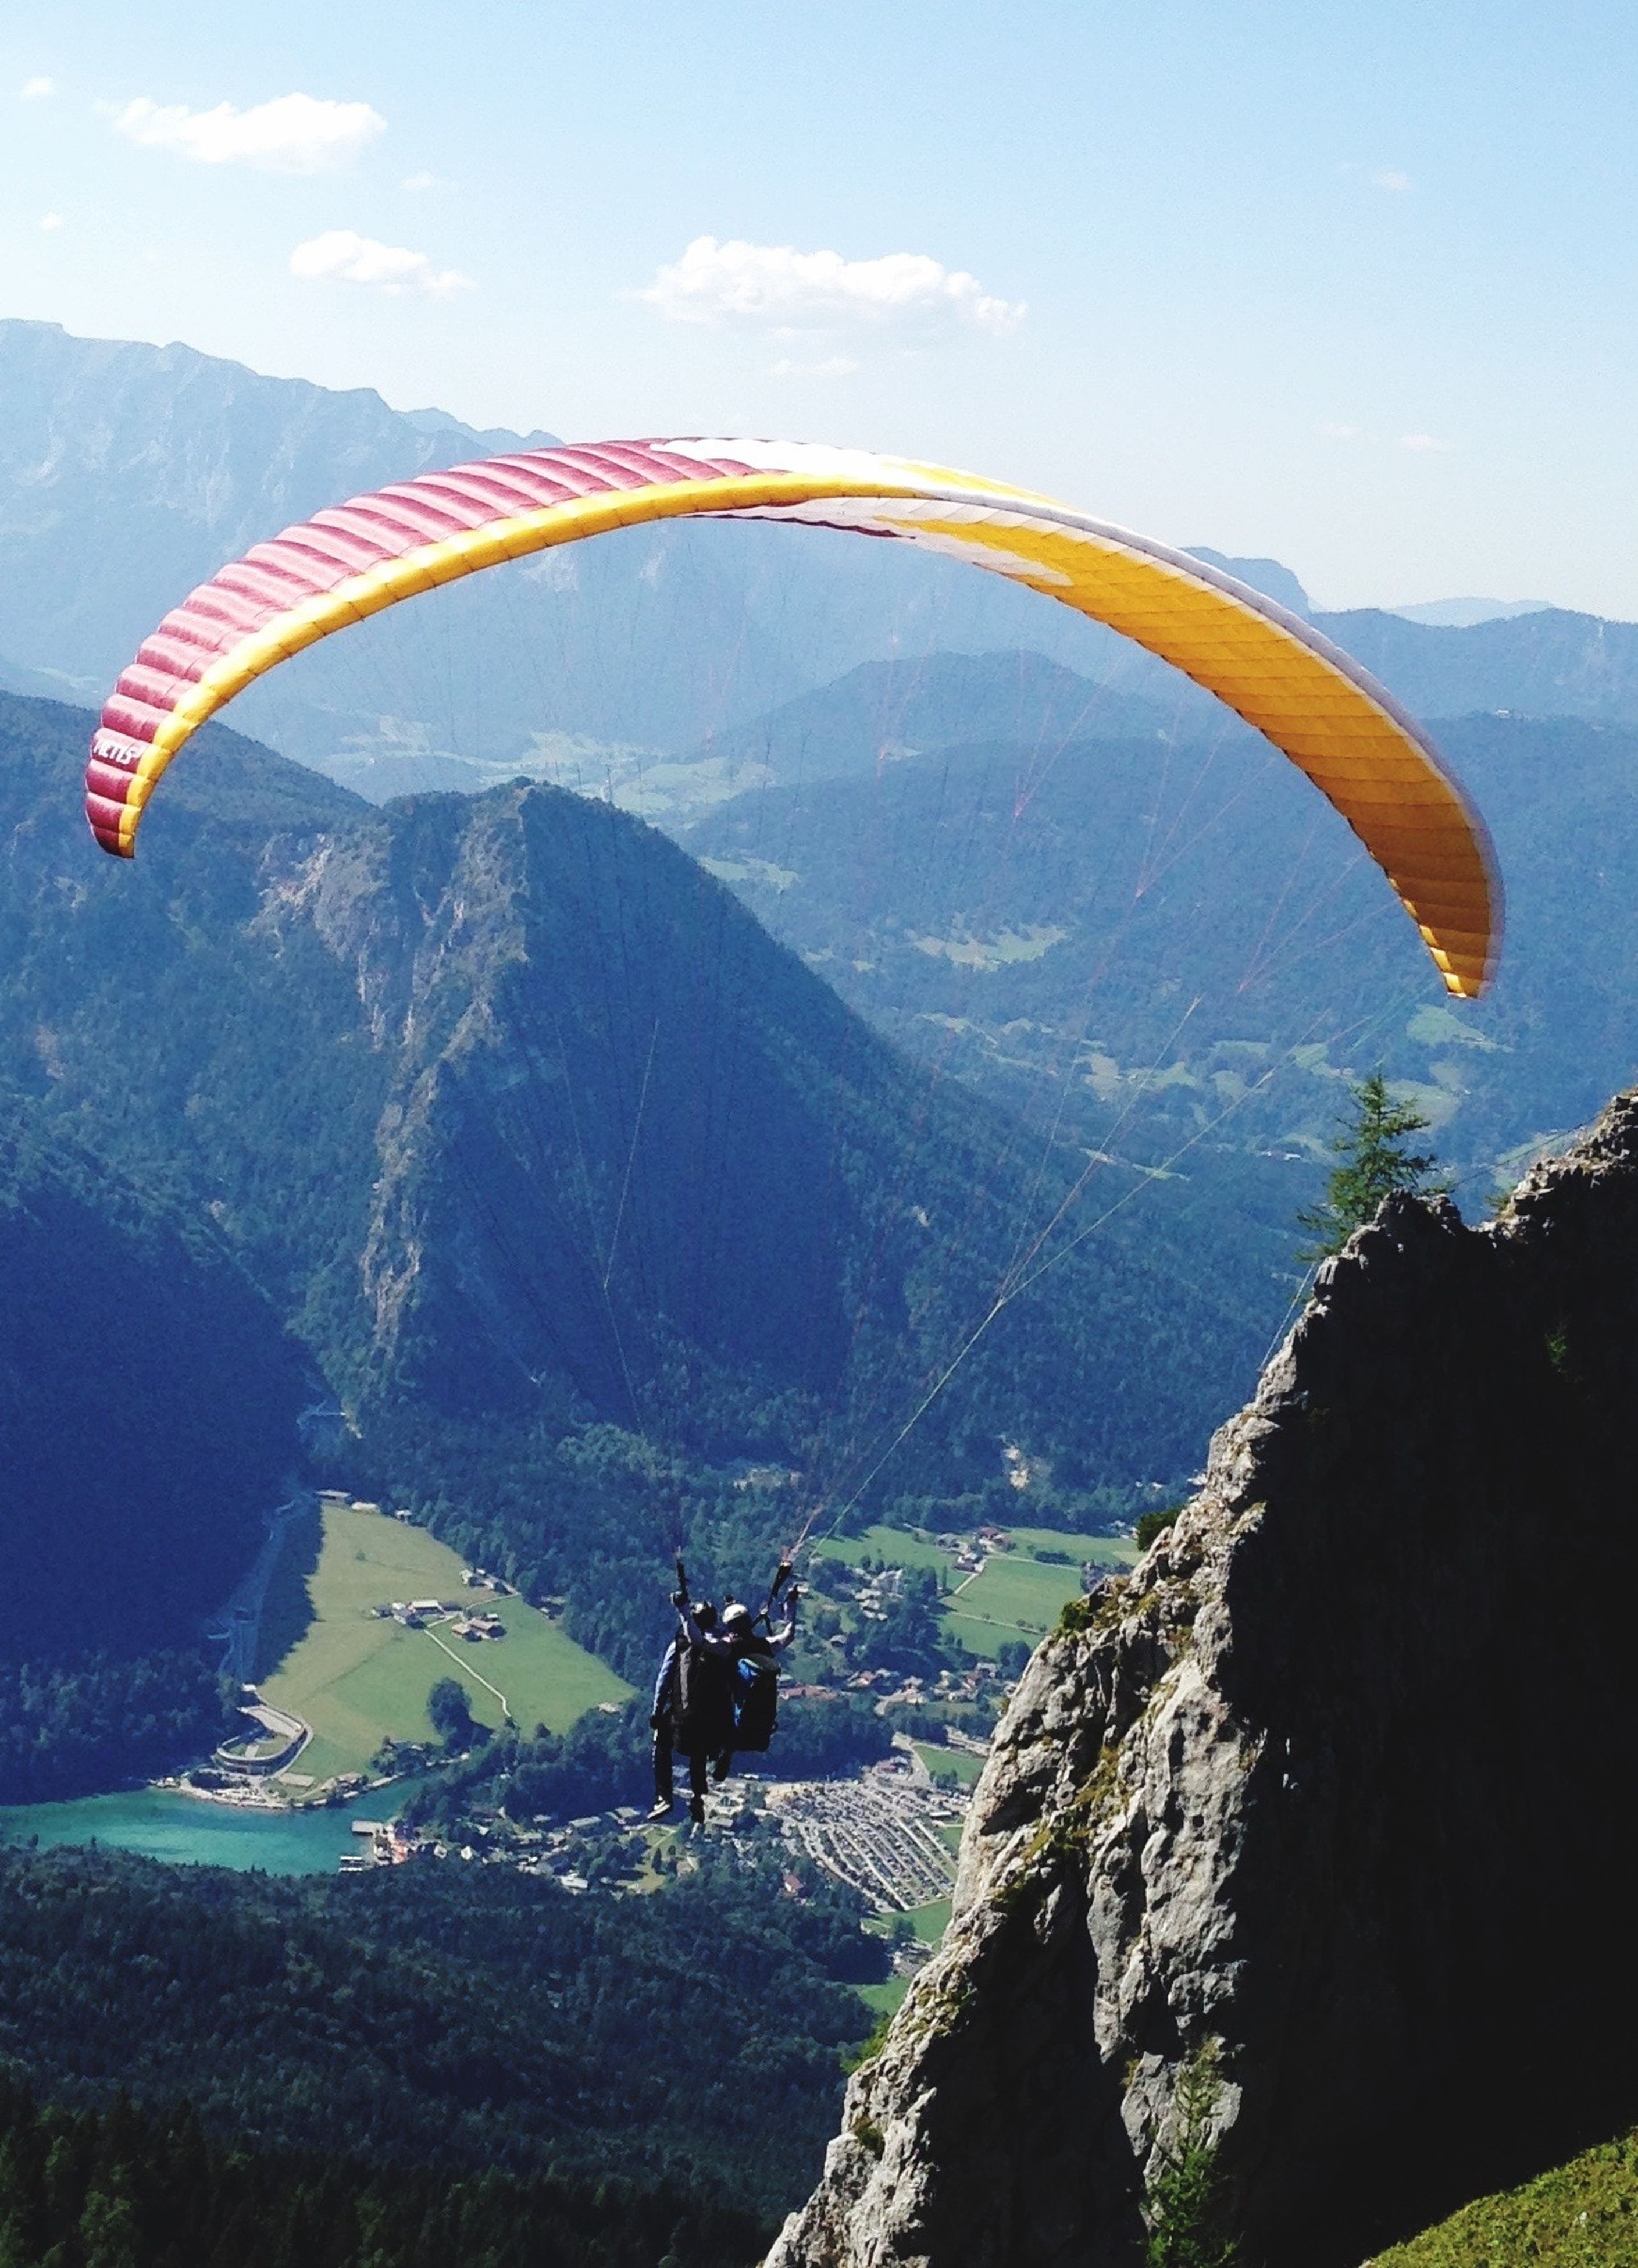 mountain, day, mountain range, nature, adventure, flying, scenics, outdoors, beauty in nature, sky, parachute, transportation, tranquil scene, mid-air, landscape, extreme sports, sunlight, paragliding, sport, real people, men, one person, people